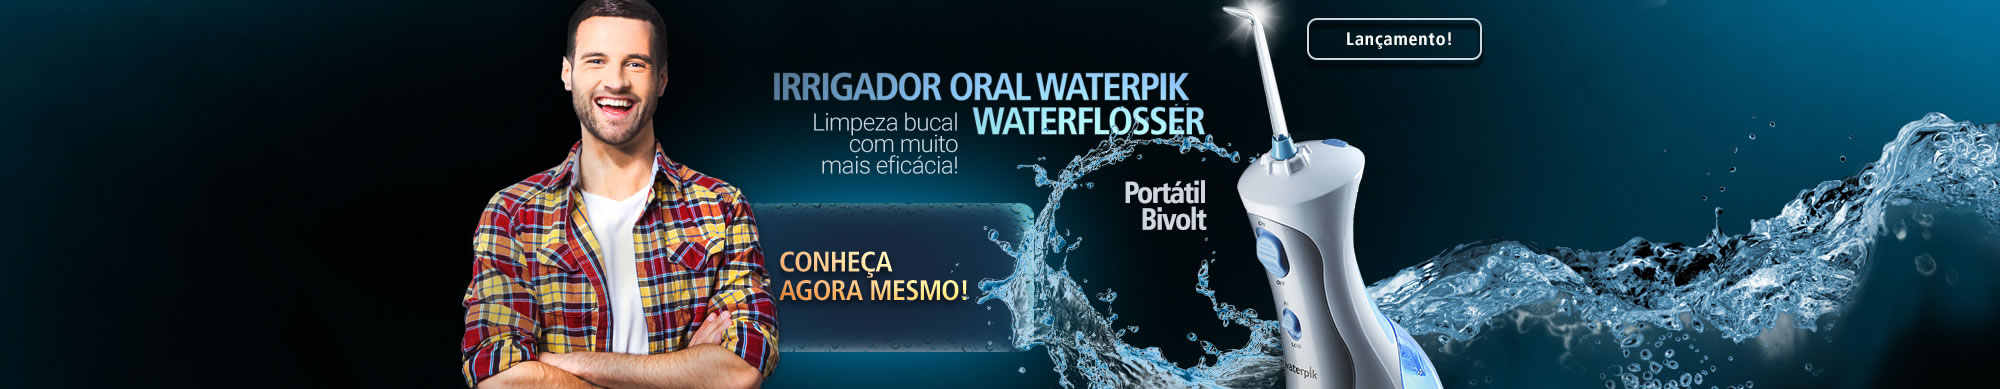 Waterpik-banner